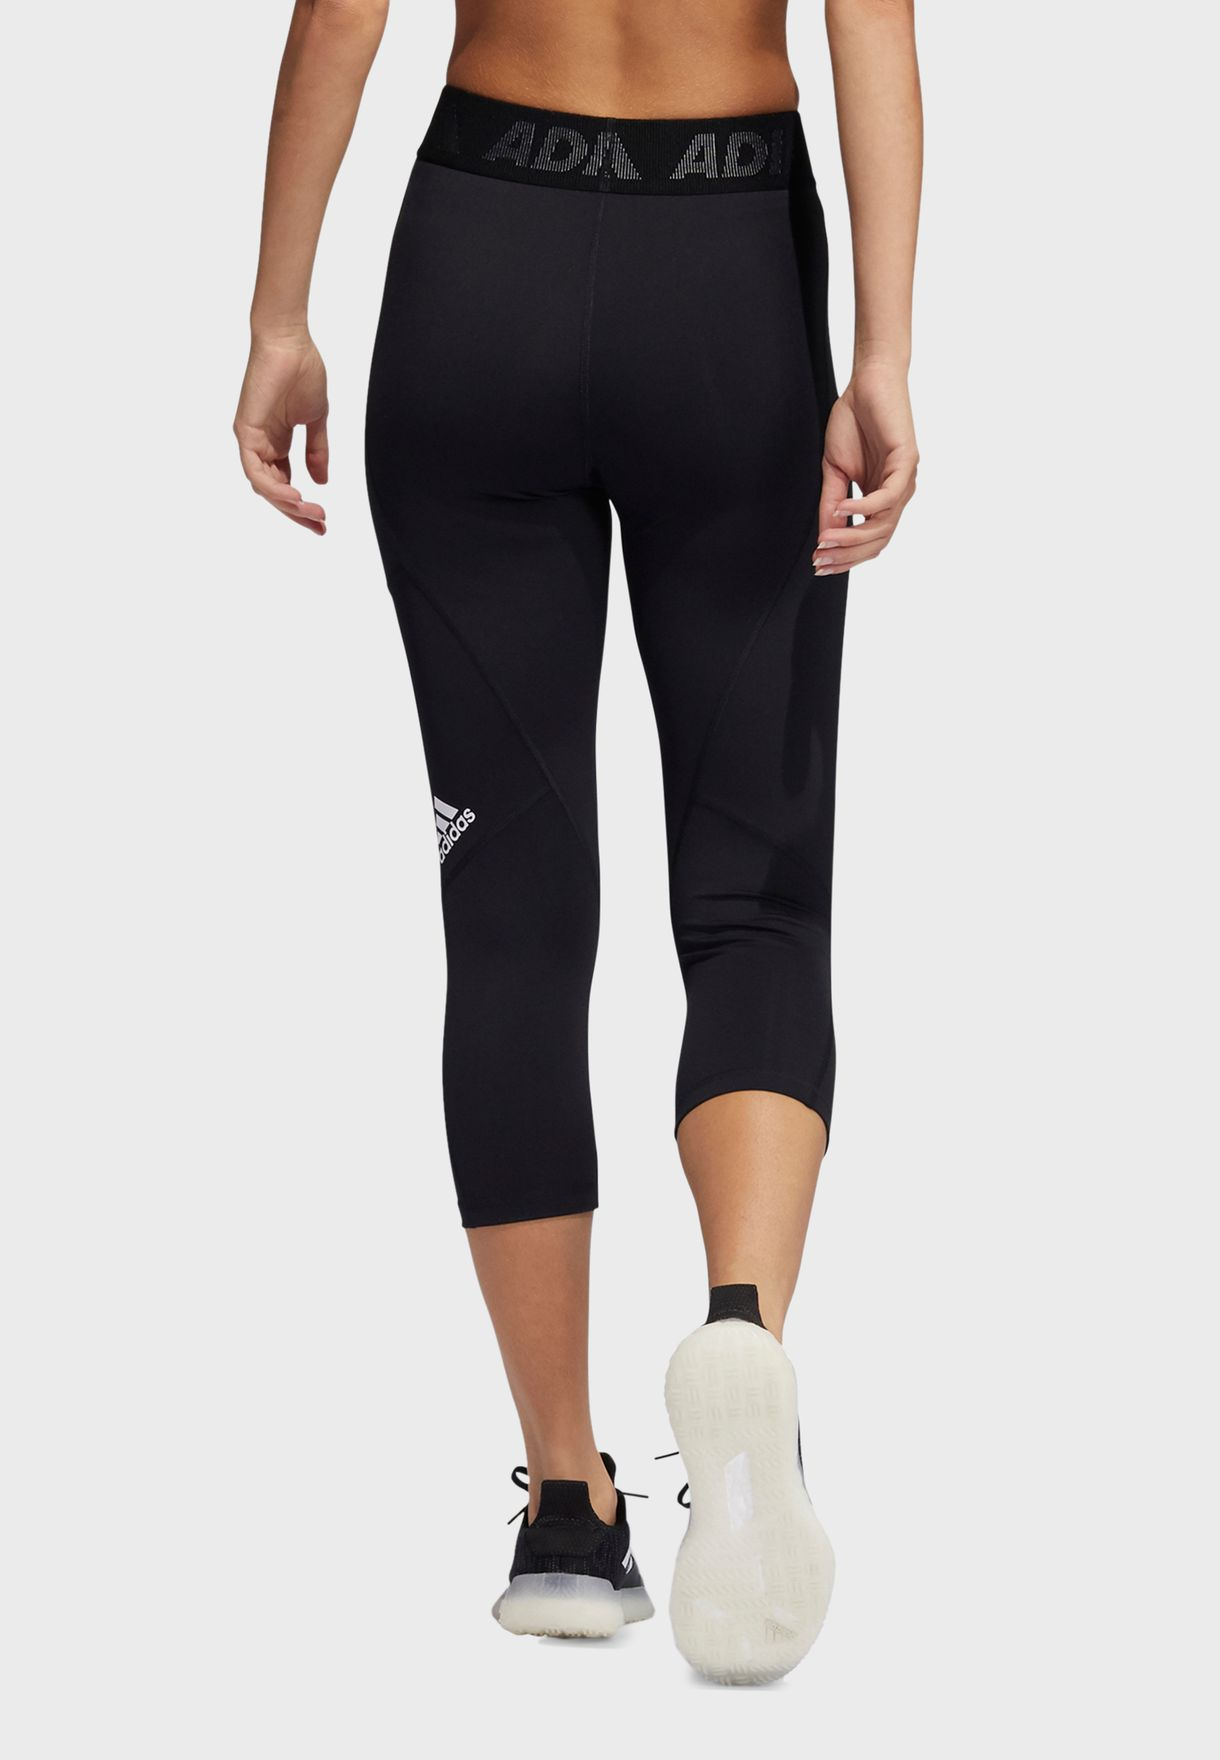 TechFit 3/4 Tights